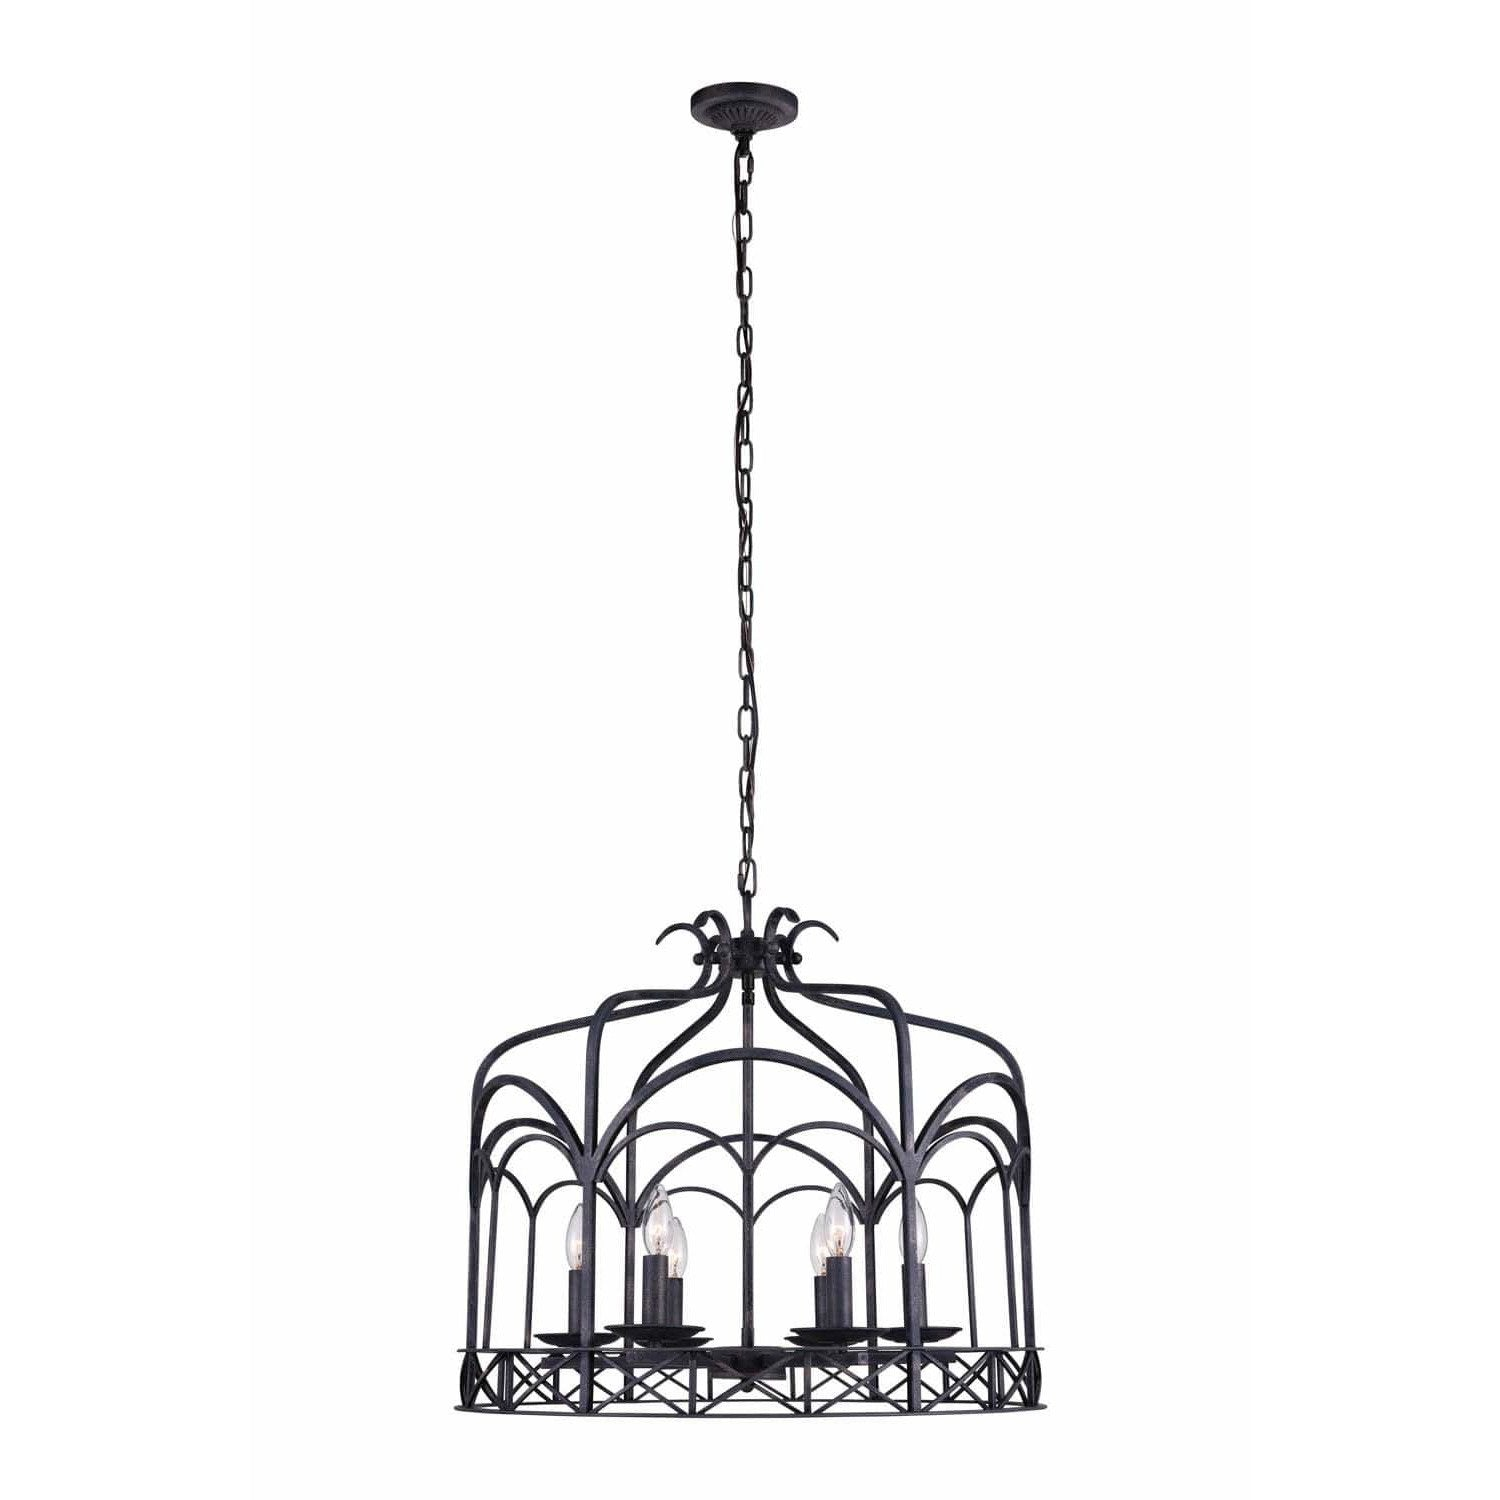 CWI Lighting Chandeliers Grayish Brown Sequoia 6 Light Up Chandelier with Grayish Brown finish by CWI Lighting 9936P24-6-223